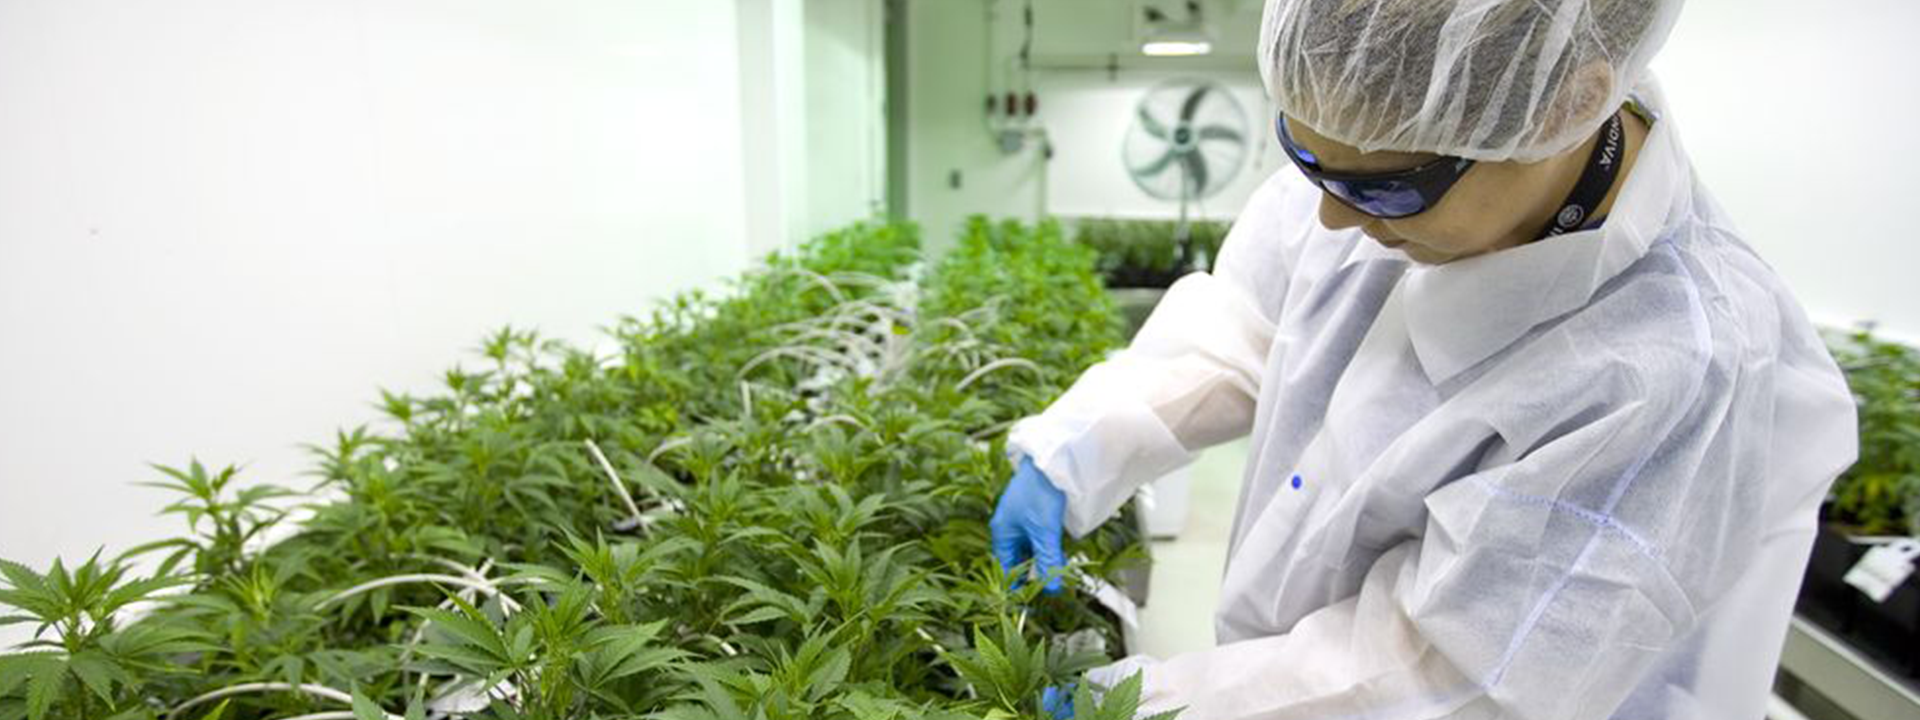 Little pot grower that could, Indiva, looking for staff who think they can